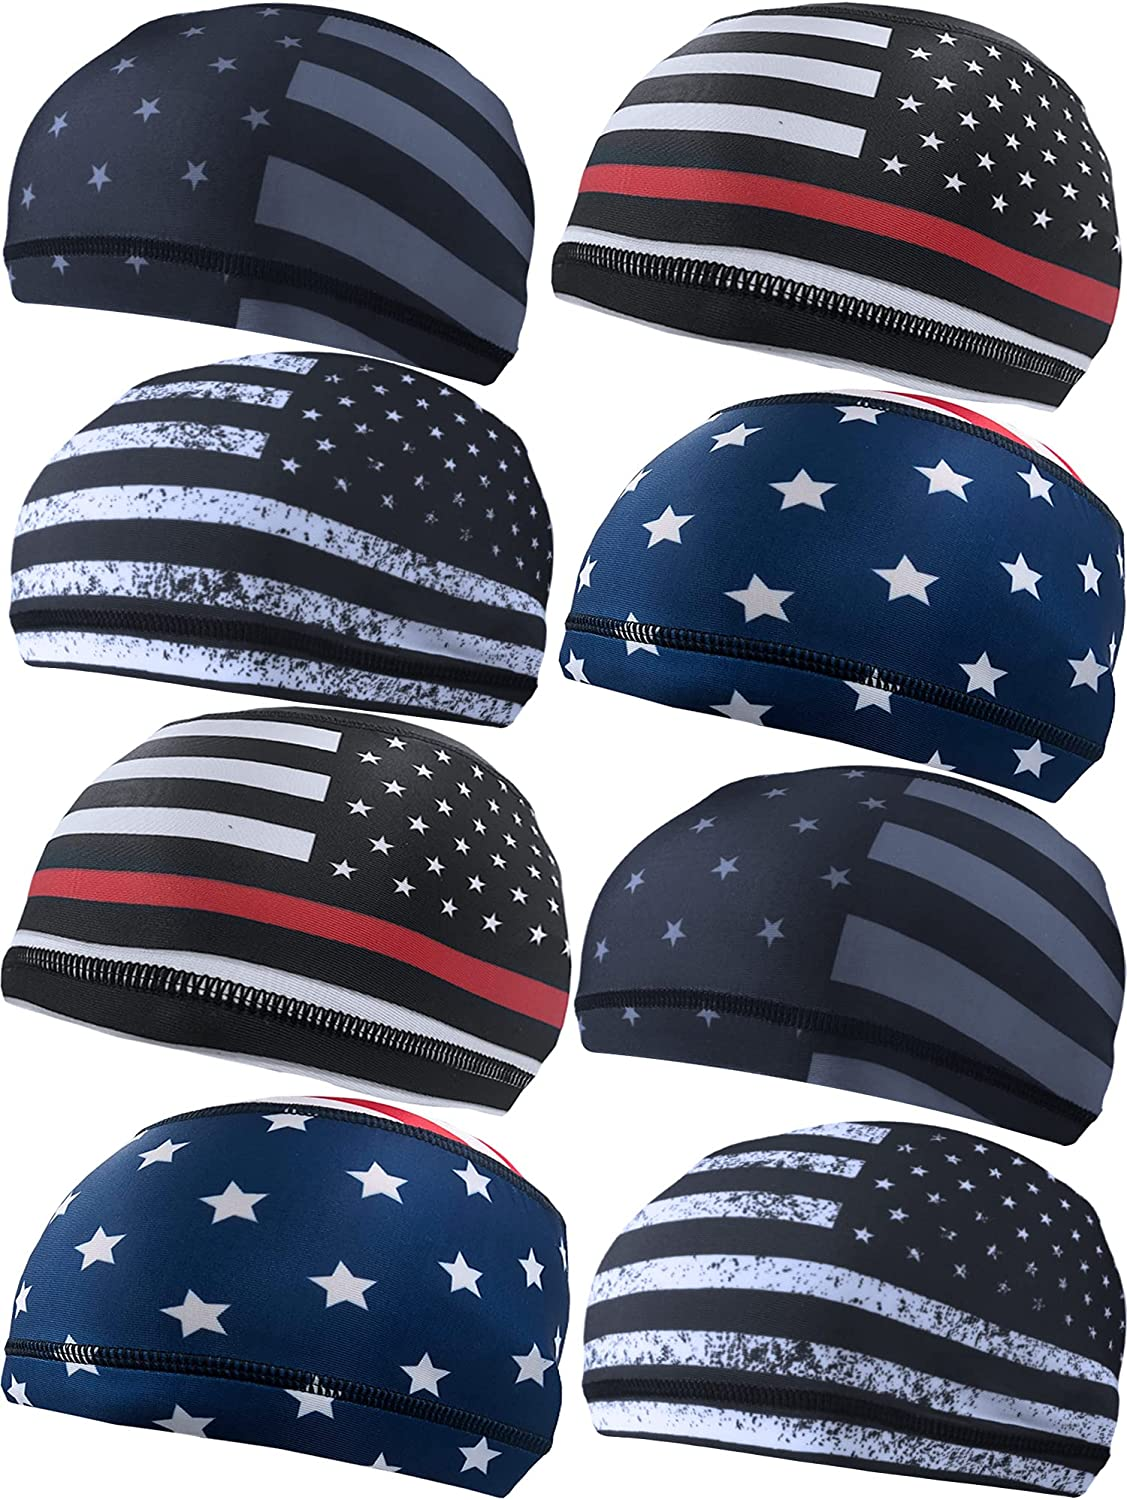 Geyoga 55% OFF 8 Pieces Cooling Year-end annual account Skull Cap Be Running Liner Wicking Sweat